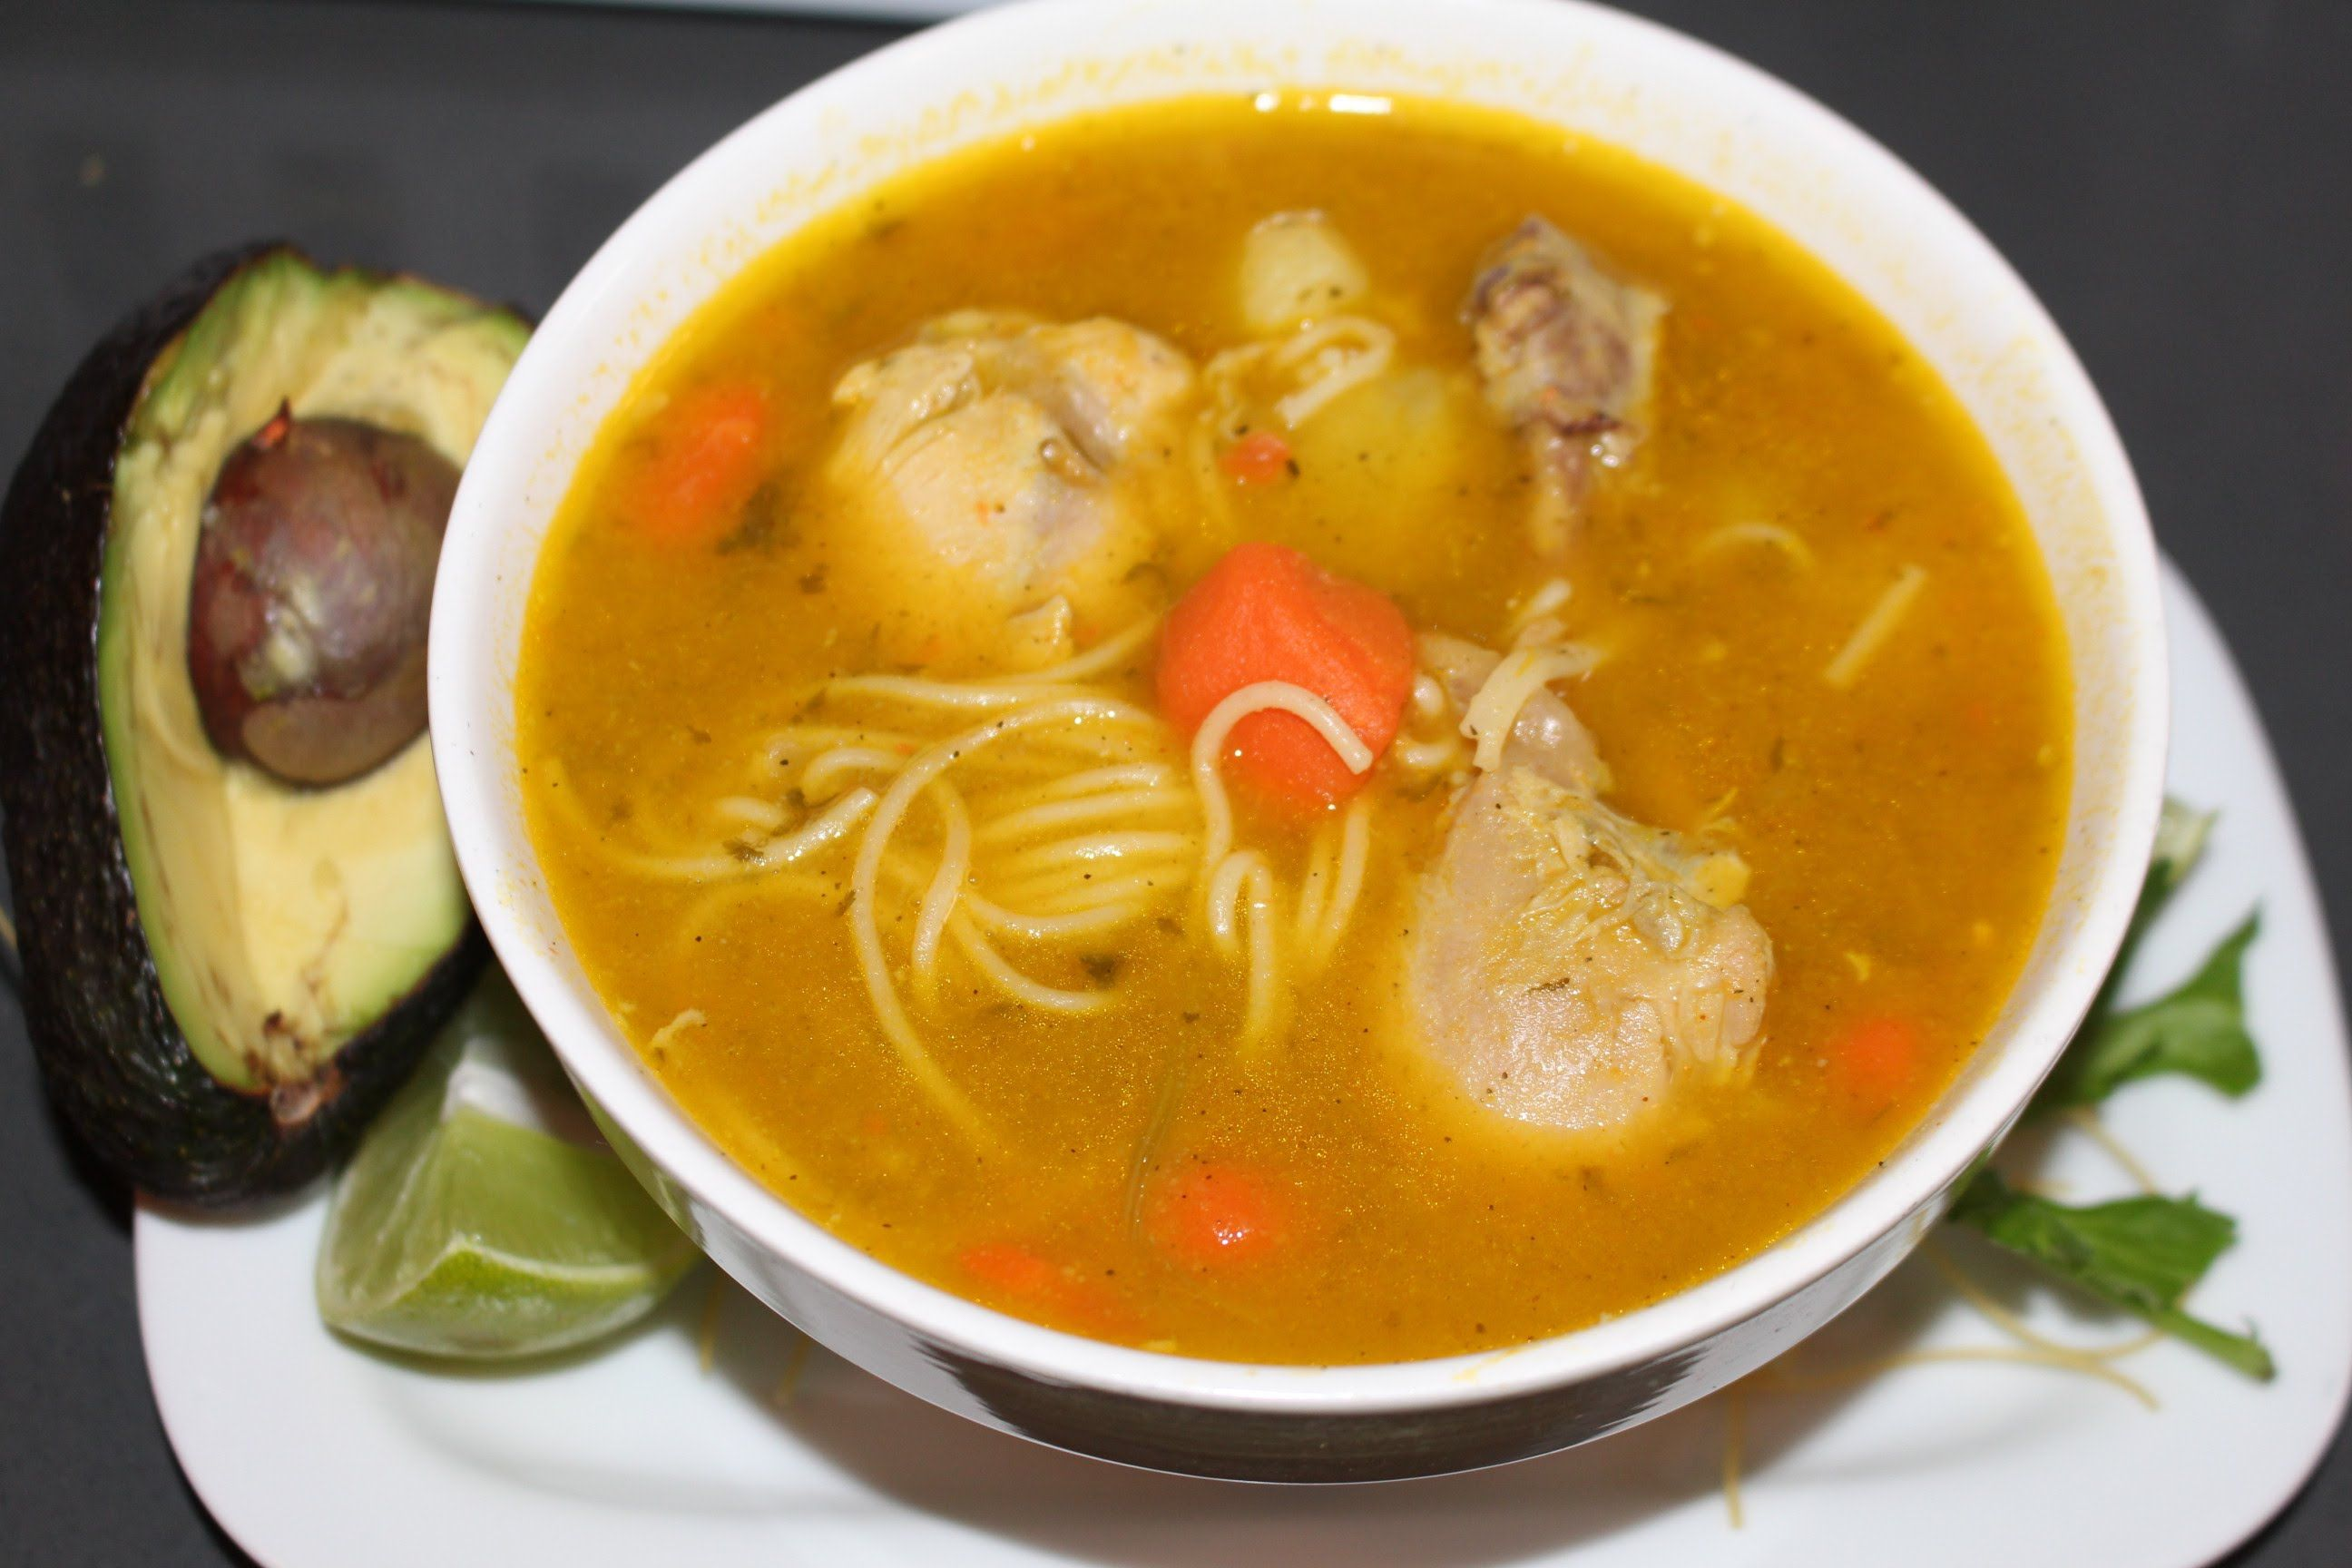 Chicken noodle soup dominican style dominican food pinterest chicken noodle soup dominican style forumfinder Choice Image